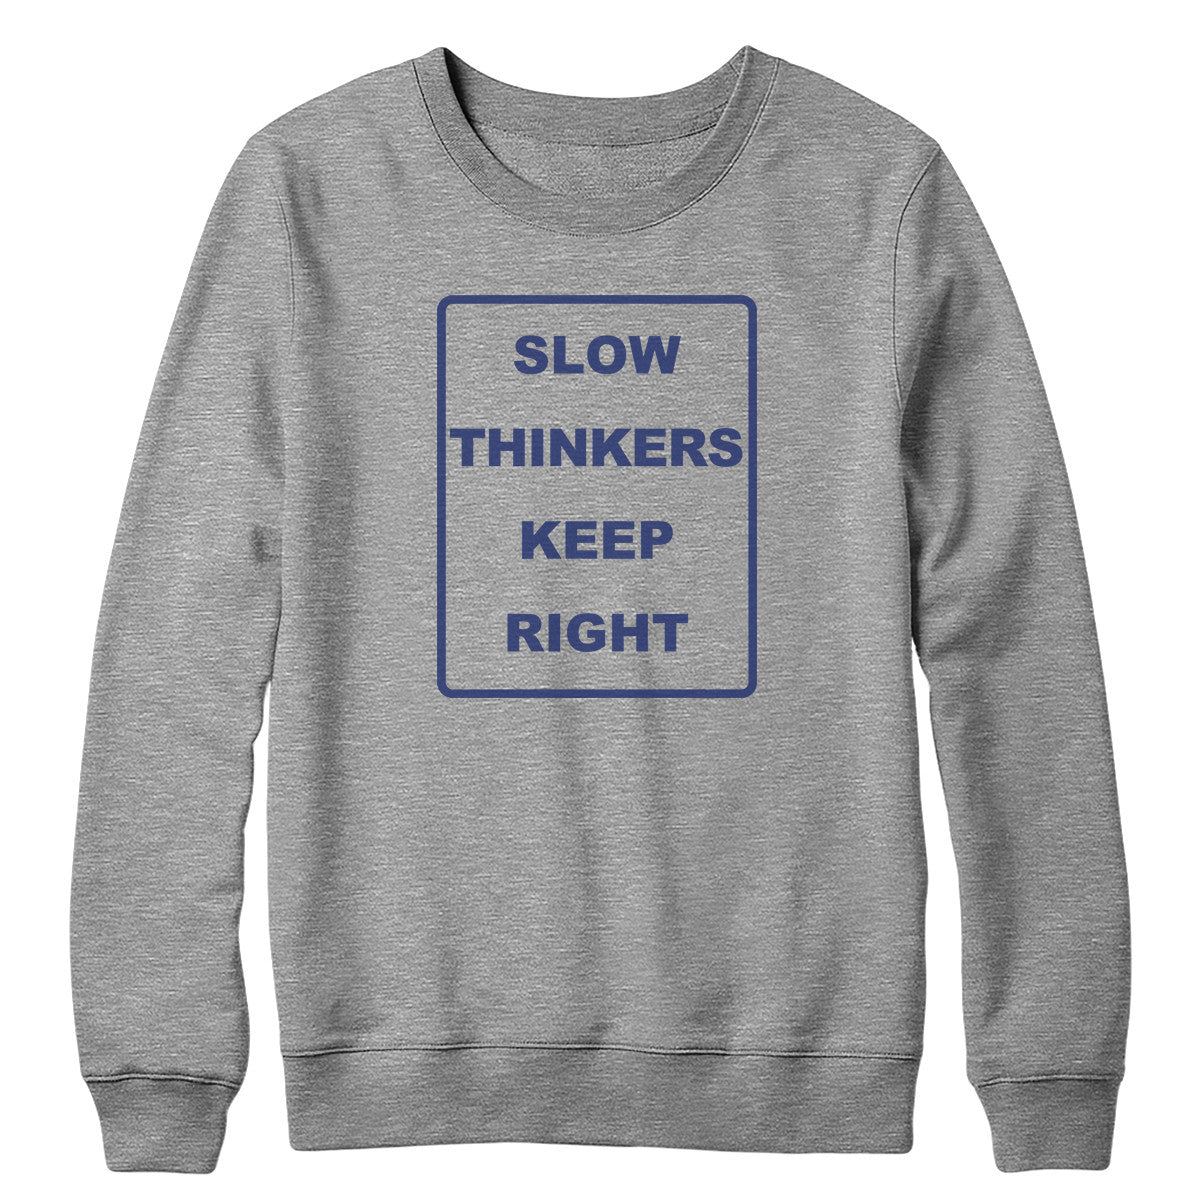 Slow Thinkers Keep Right Crewneck Sweatshirt